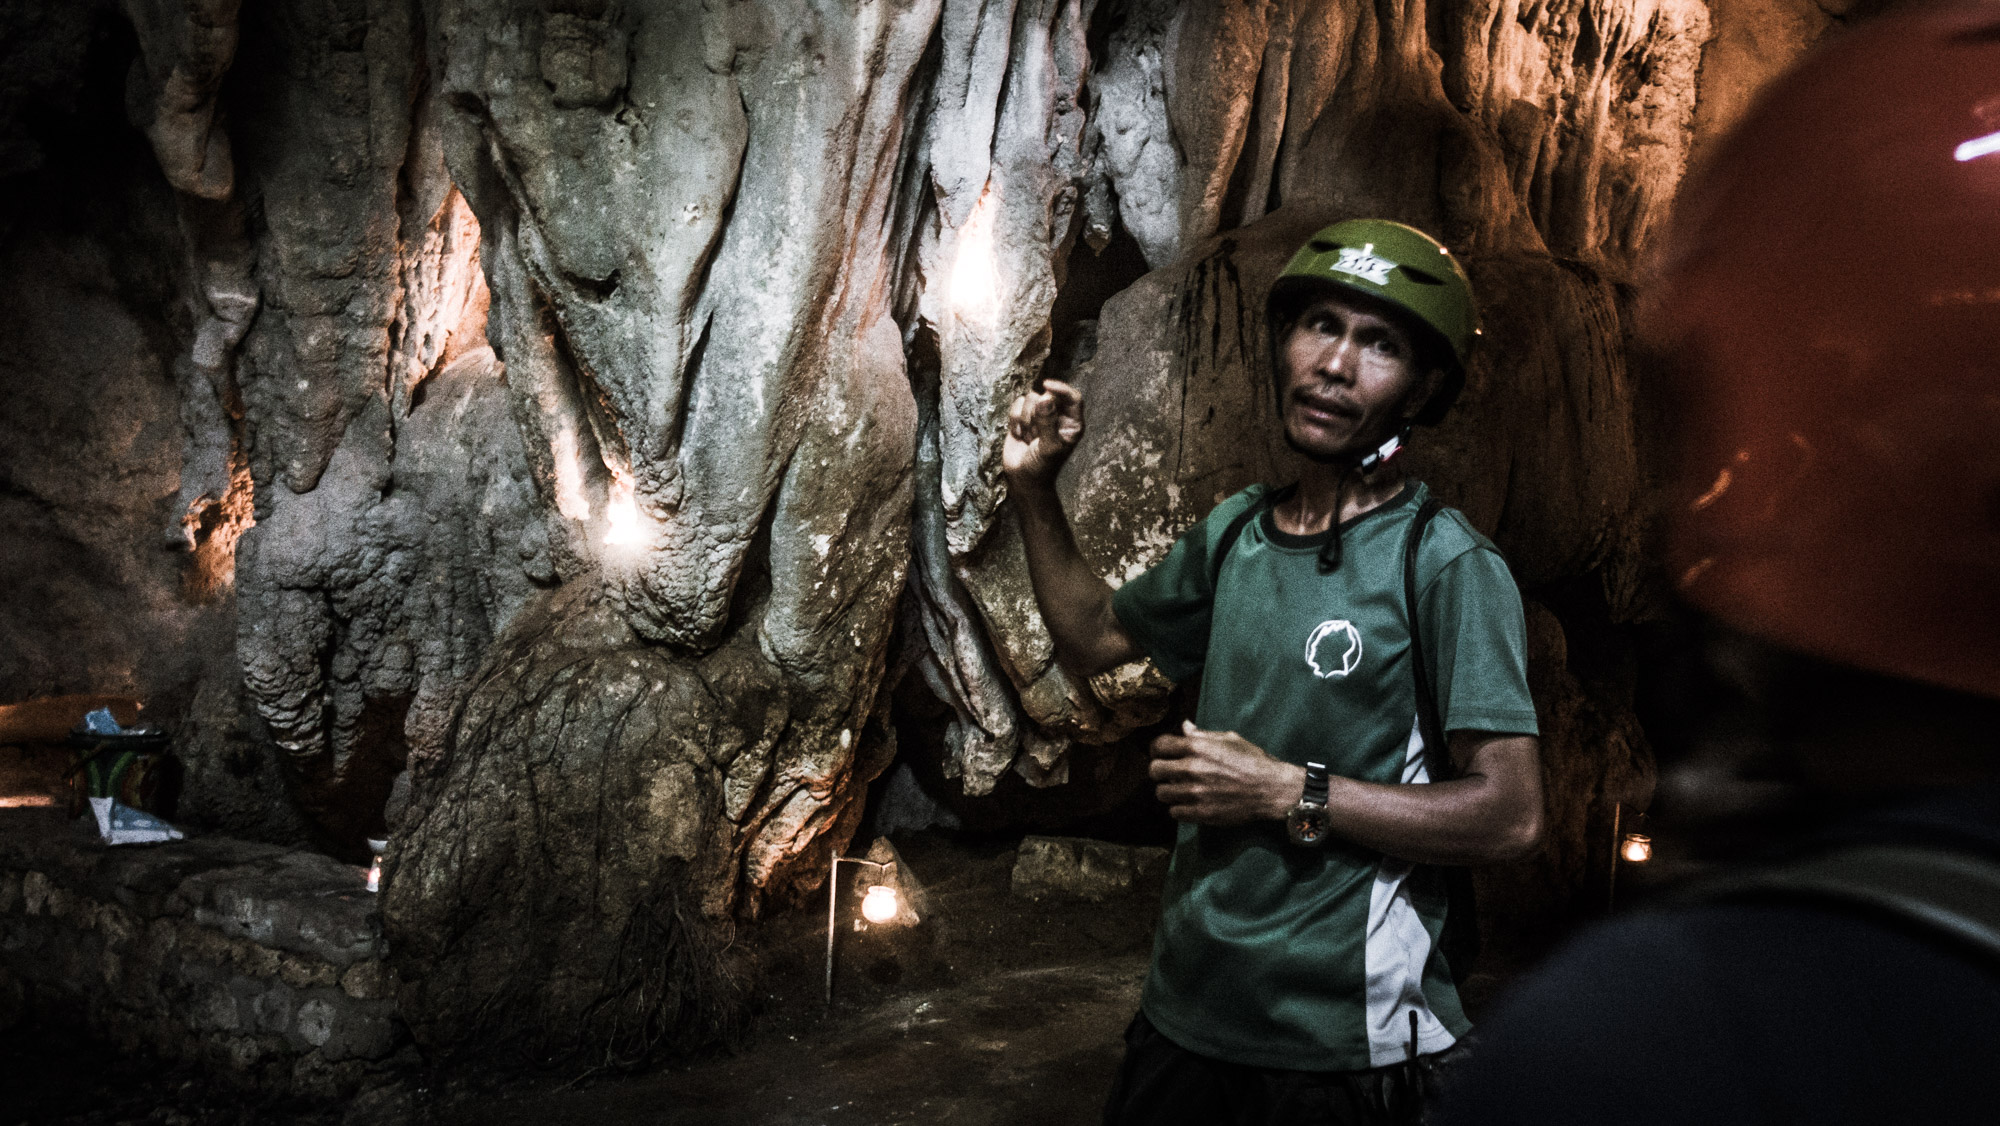 YUNGIB NI RUBEN. Inside the cave that Kuya Ruben discovered, which is aptly named after him.